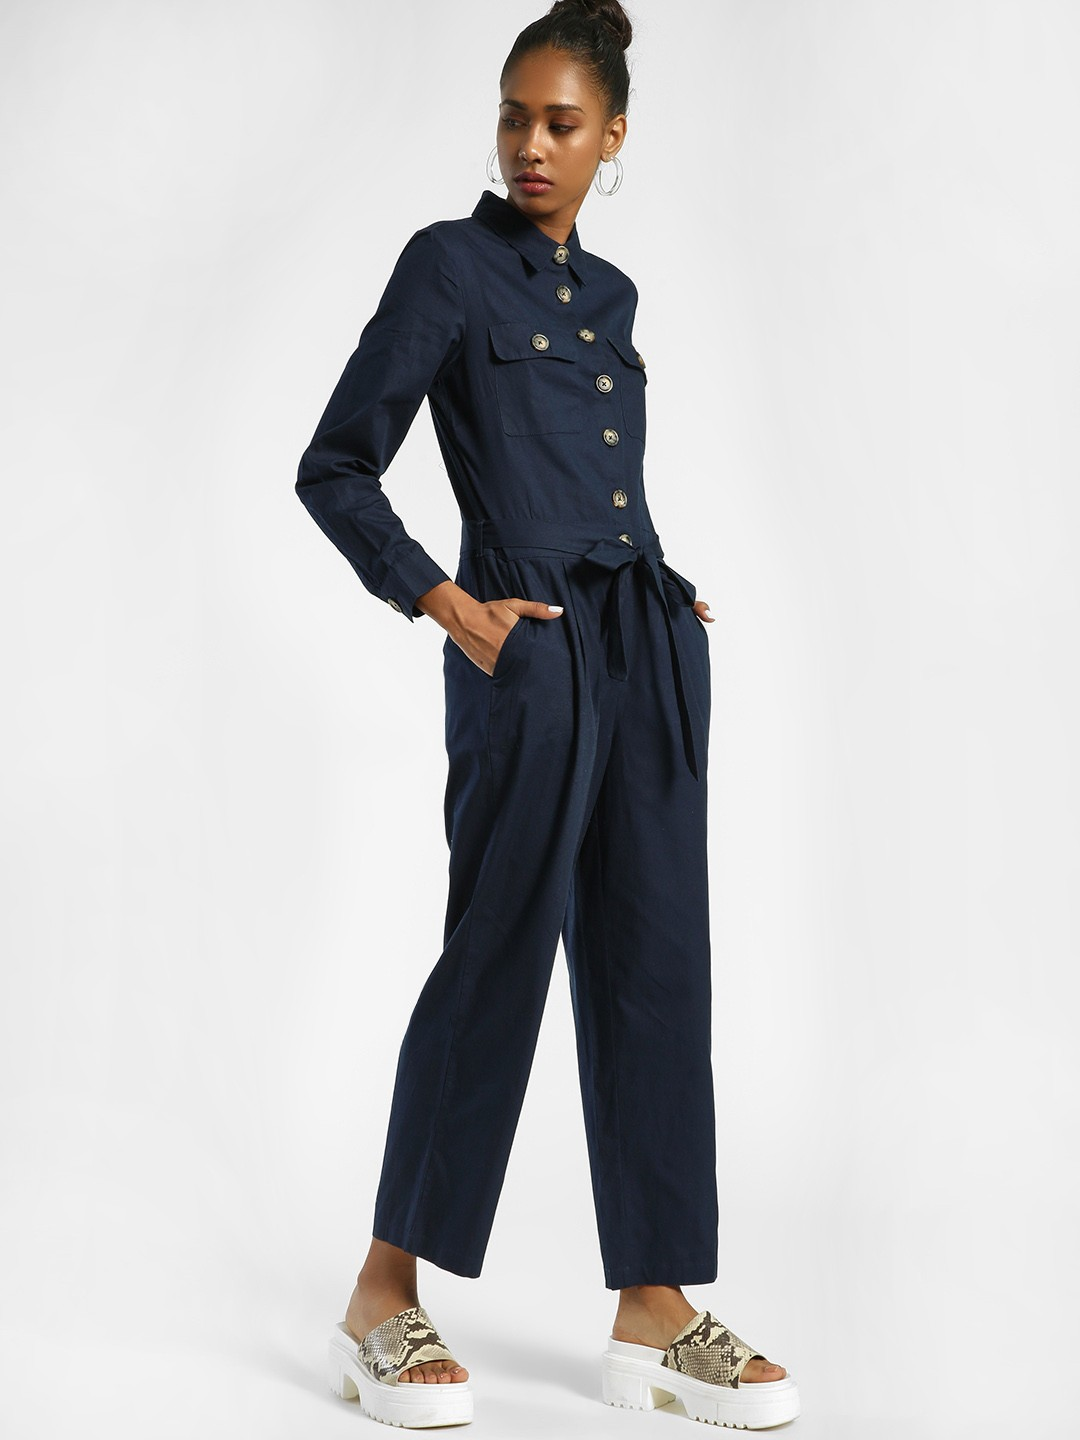 PostFold Navy Front Tie-Knot Collared Jumpsuit 1